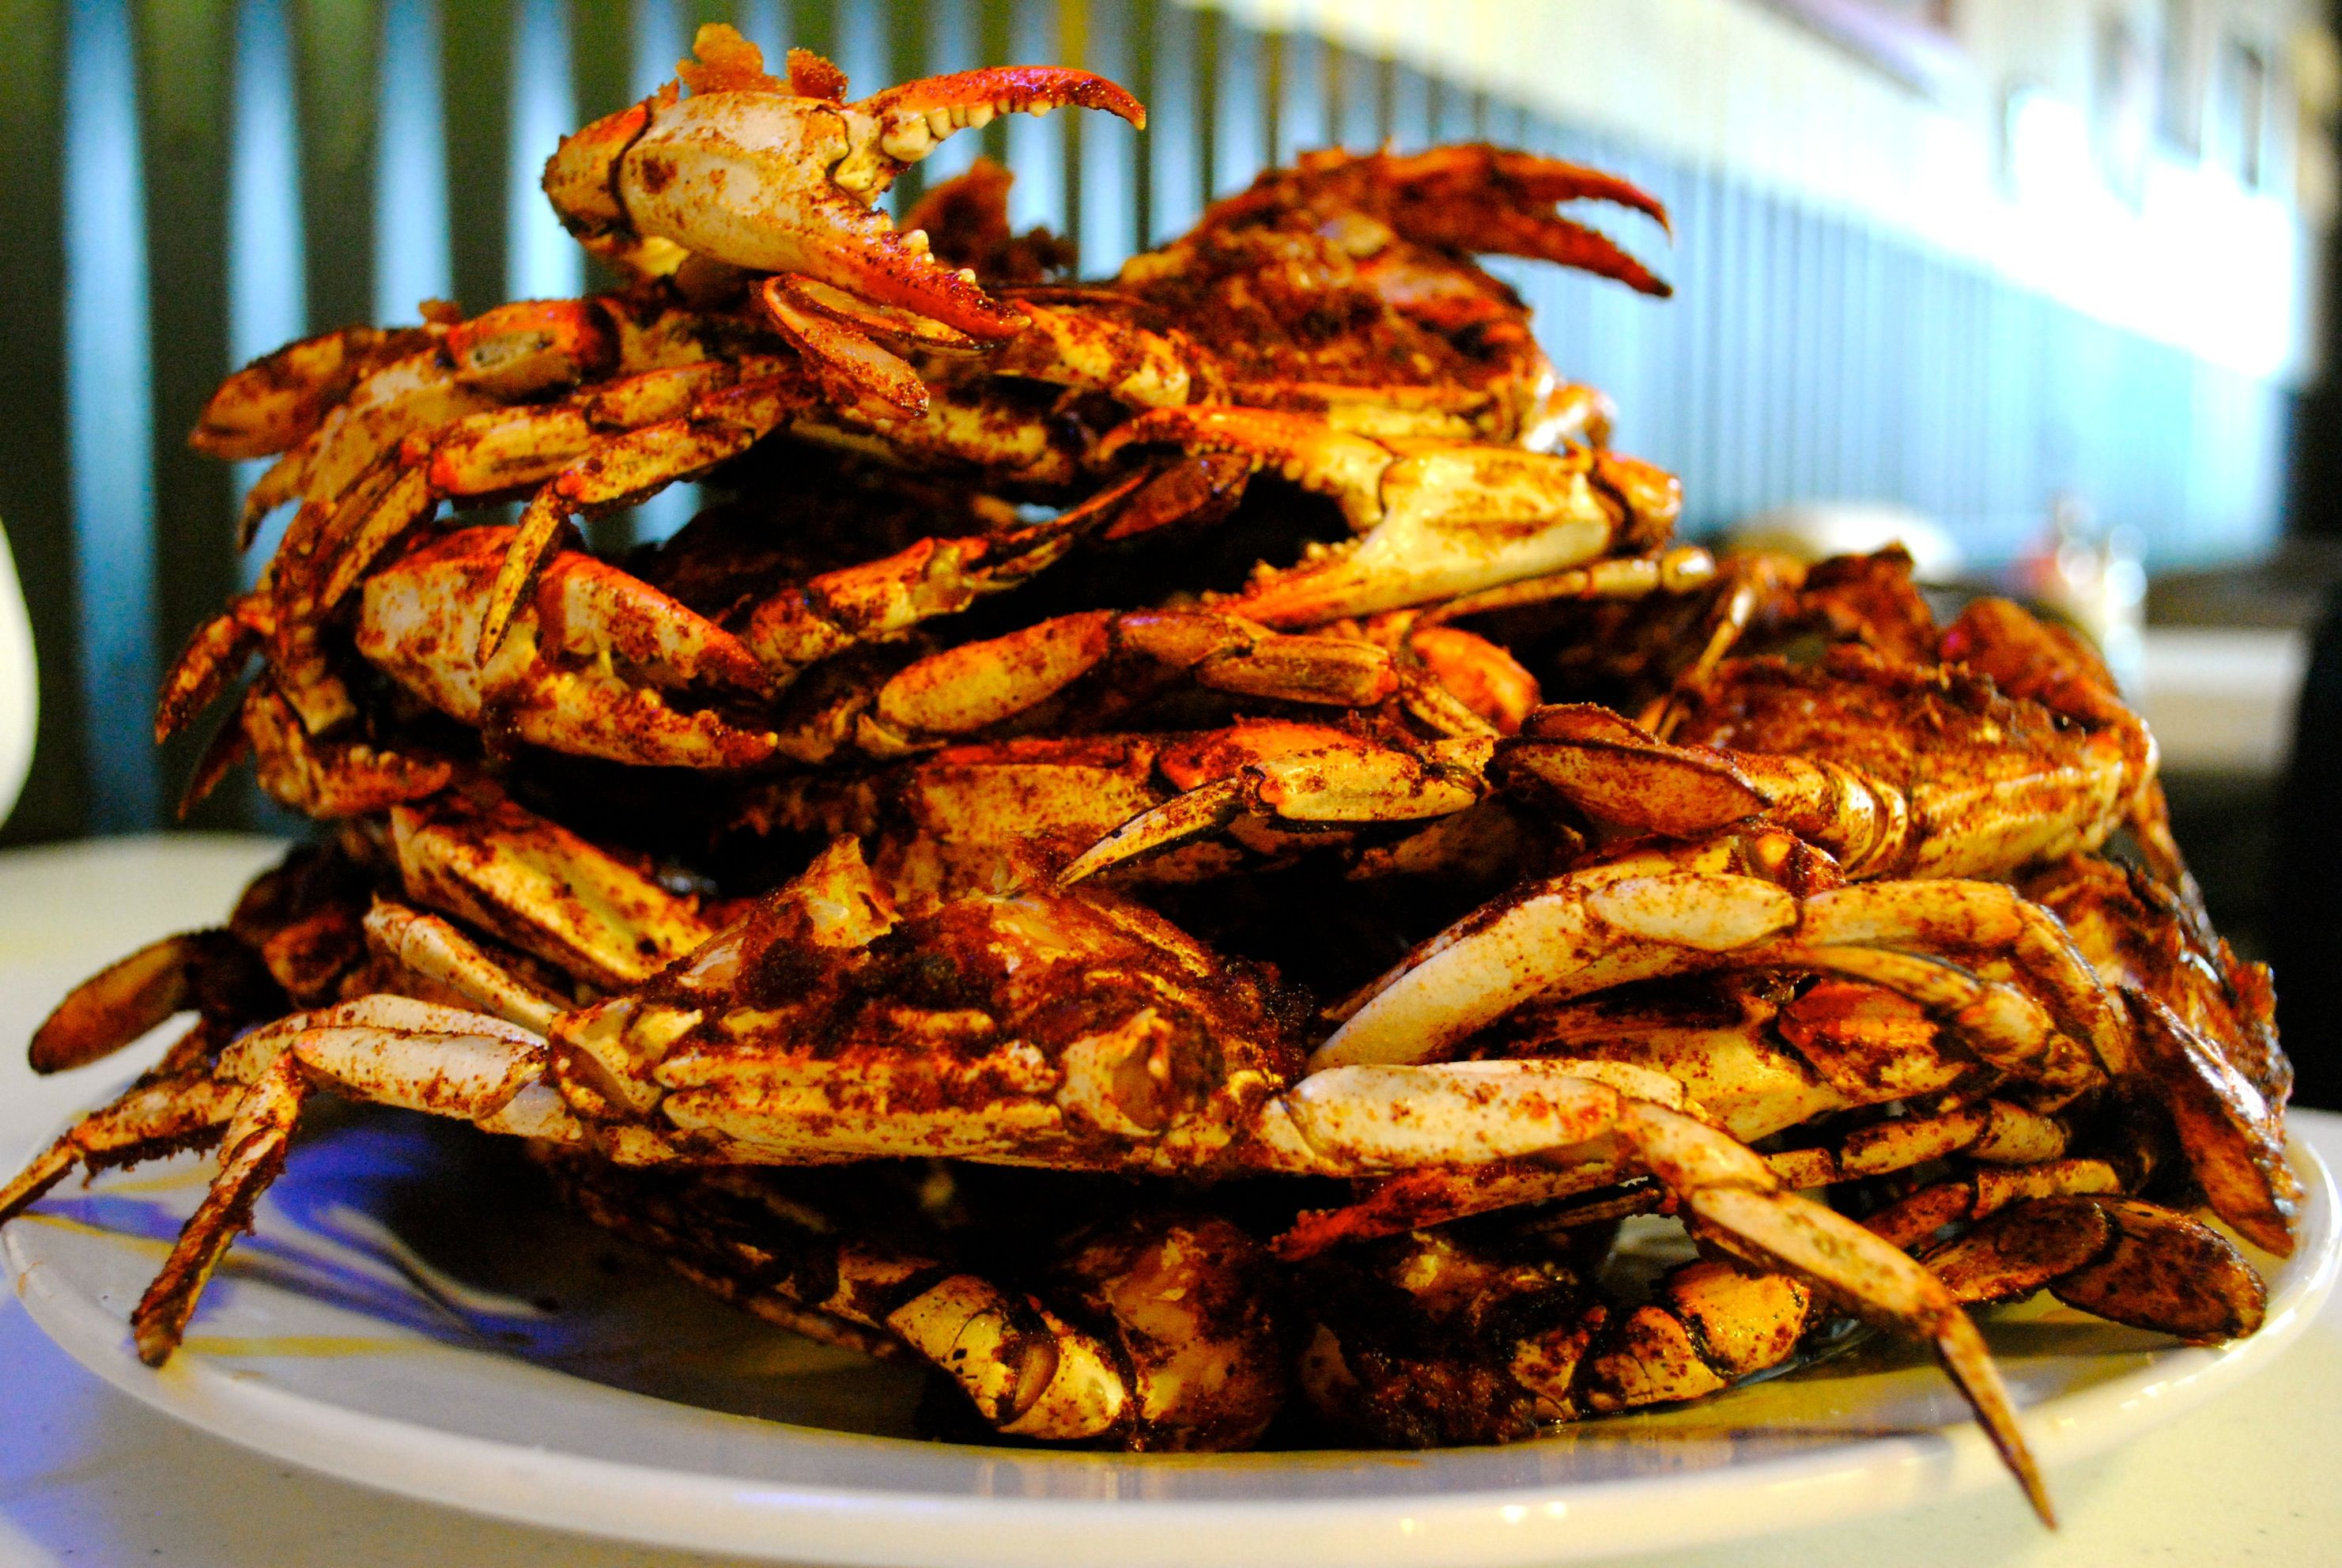 Sartin S Bbq D Crab I Ve Been Eating These For 30 Years Best Bbq Crab On The Planet Food Comfort Food Southern Crab